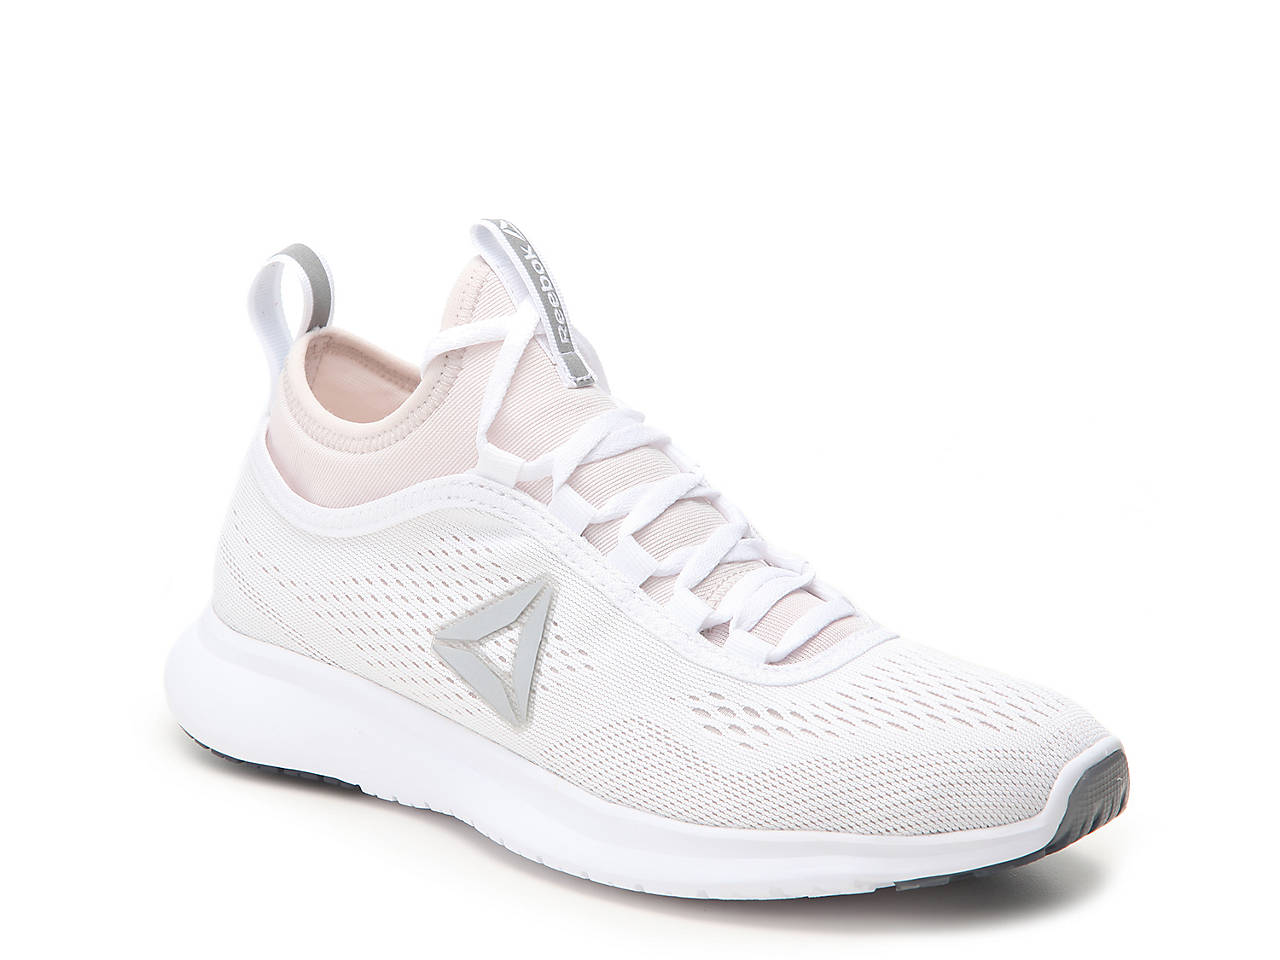 f775a21b4fa Reebok Plus Runner Lightweight Running Shoe - Women s Women s Shoes ...